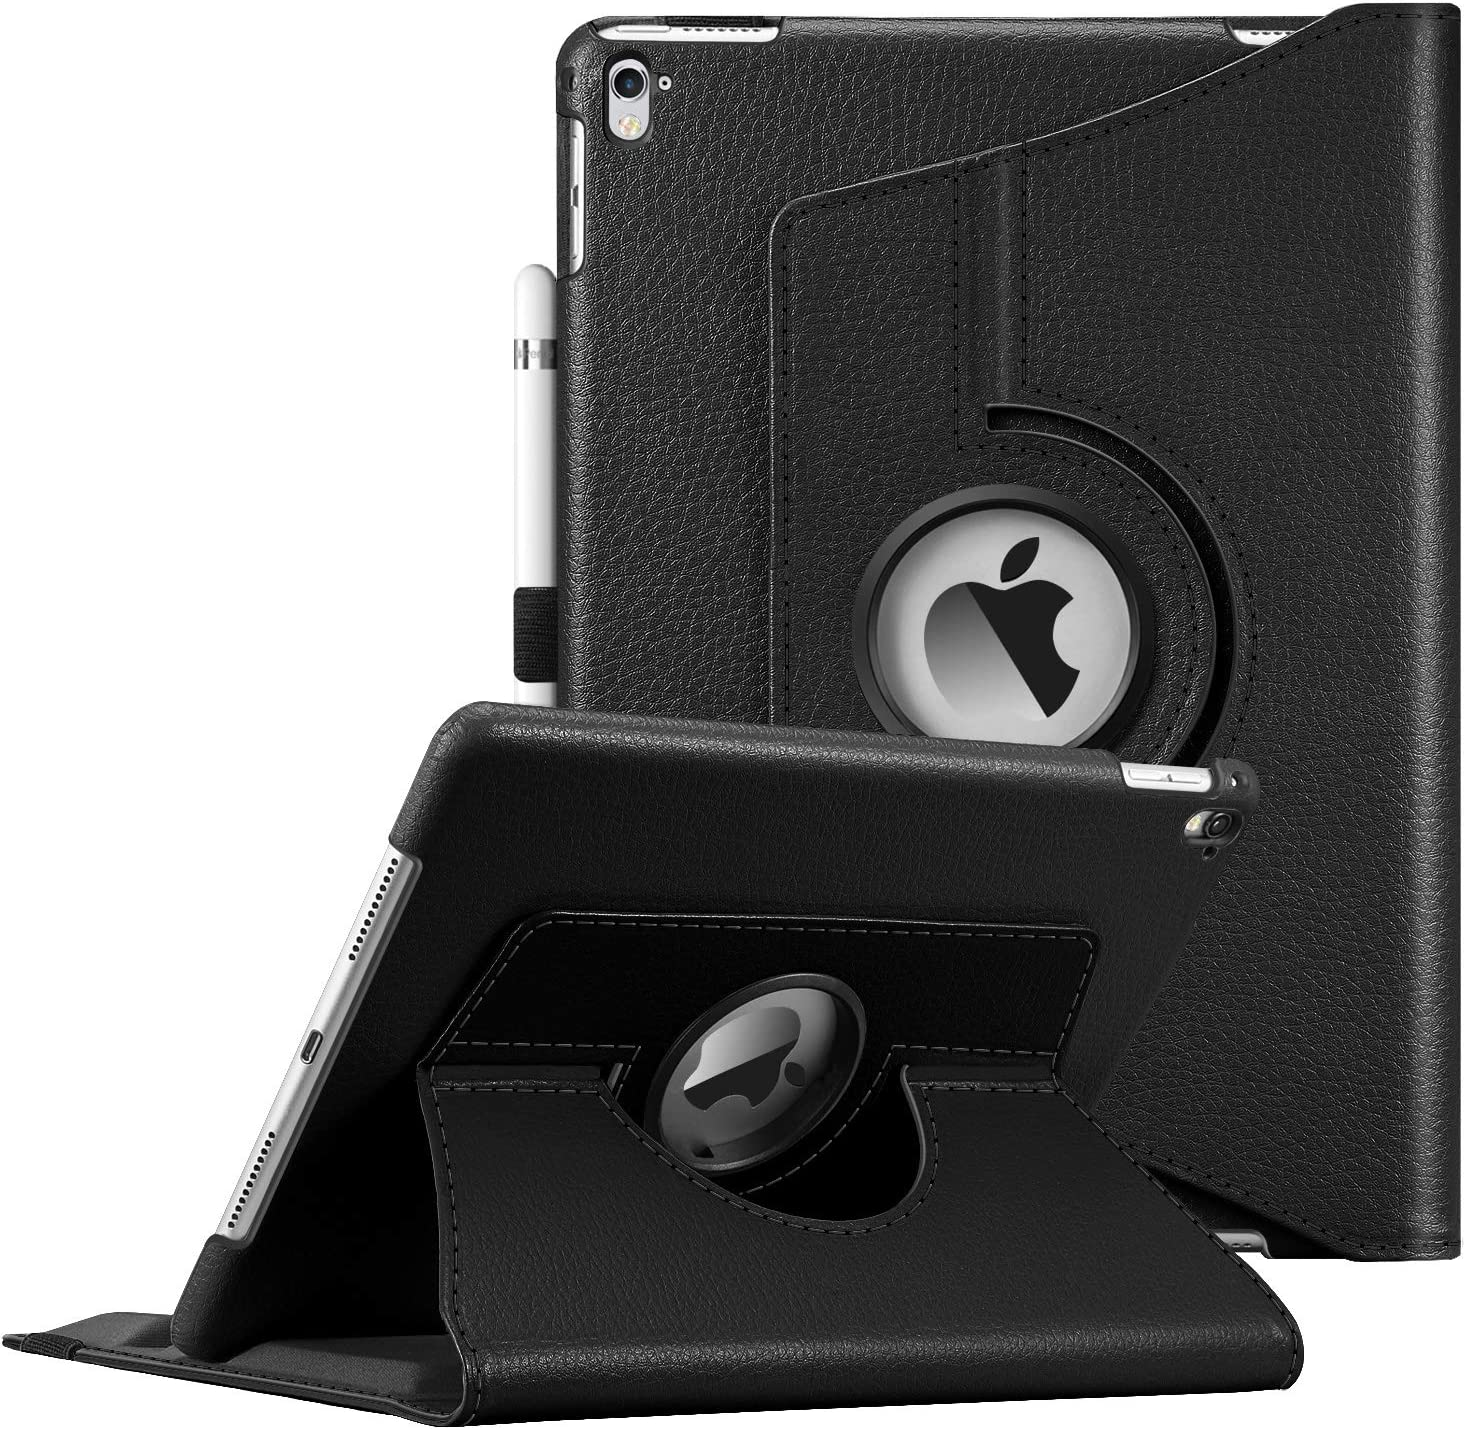 Fintie Case for iPad Pro 9.7 - 360 Degree Rotating Stand Protective Cover with Smart Stand Cover Auto Sleep/Wake Feature for iPad Pro 9.7 inch (2016 Version), Black